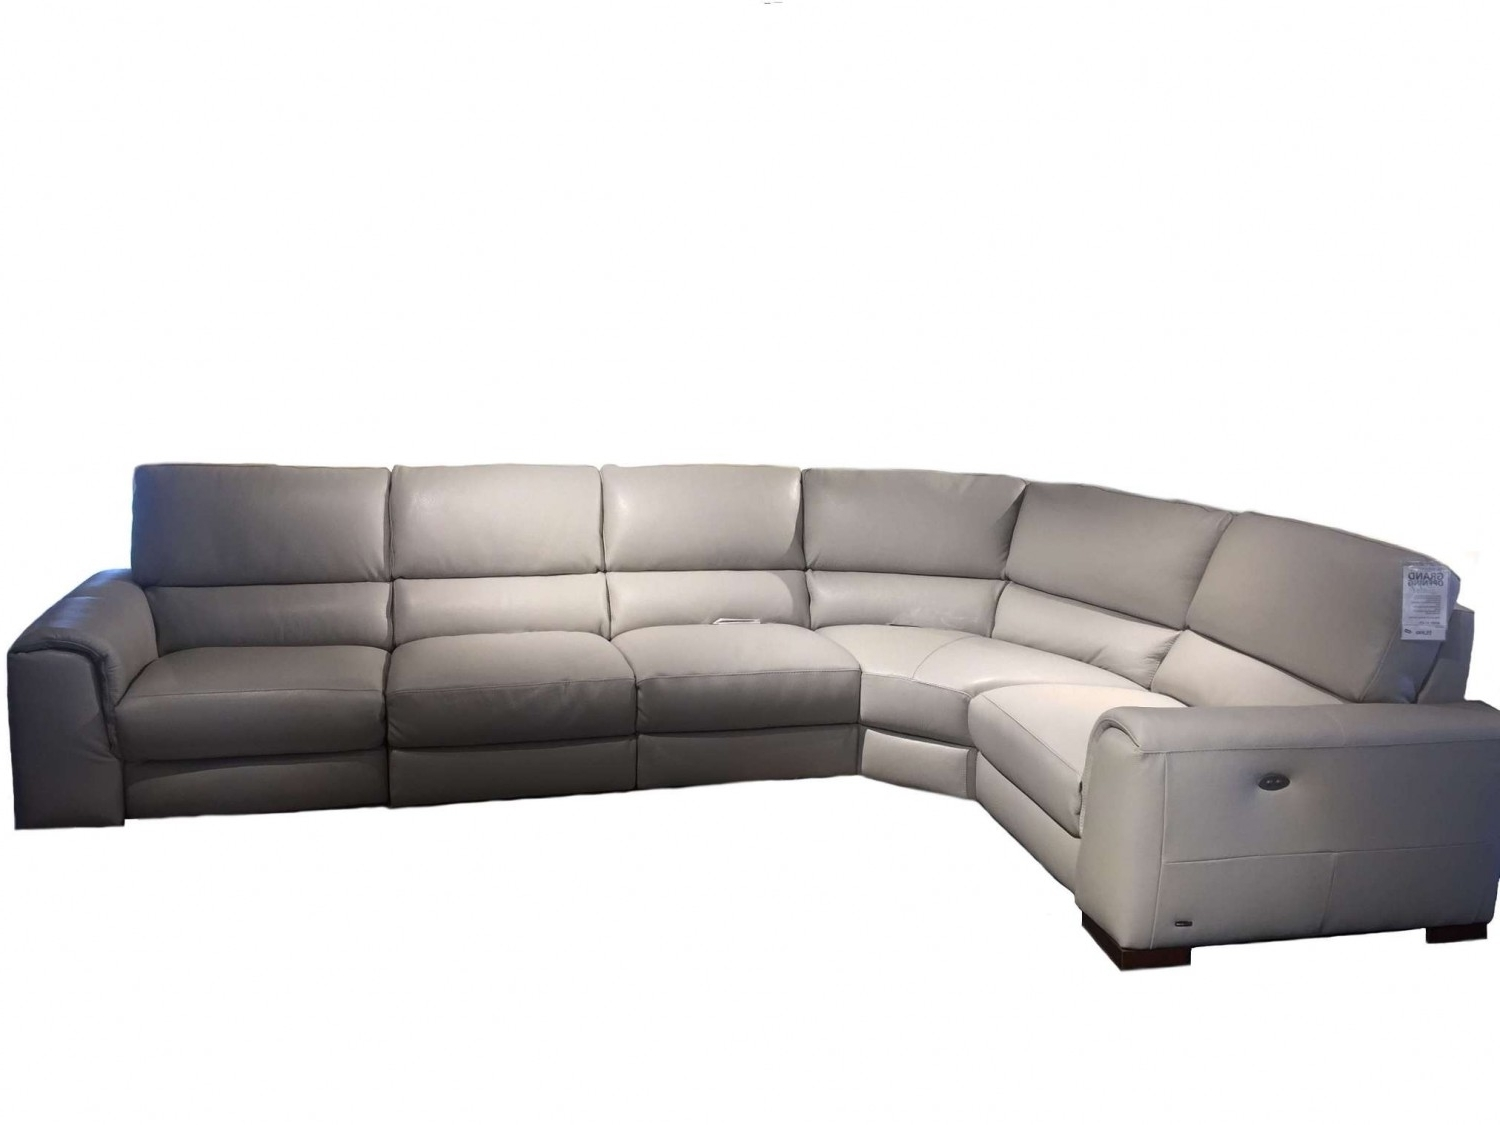 Buy Contemporary In Favorite Natuzzi Sectional Sofas (View 6 of 15)